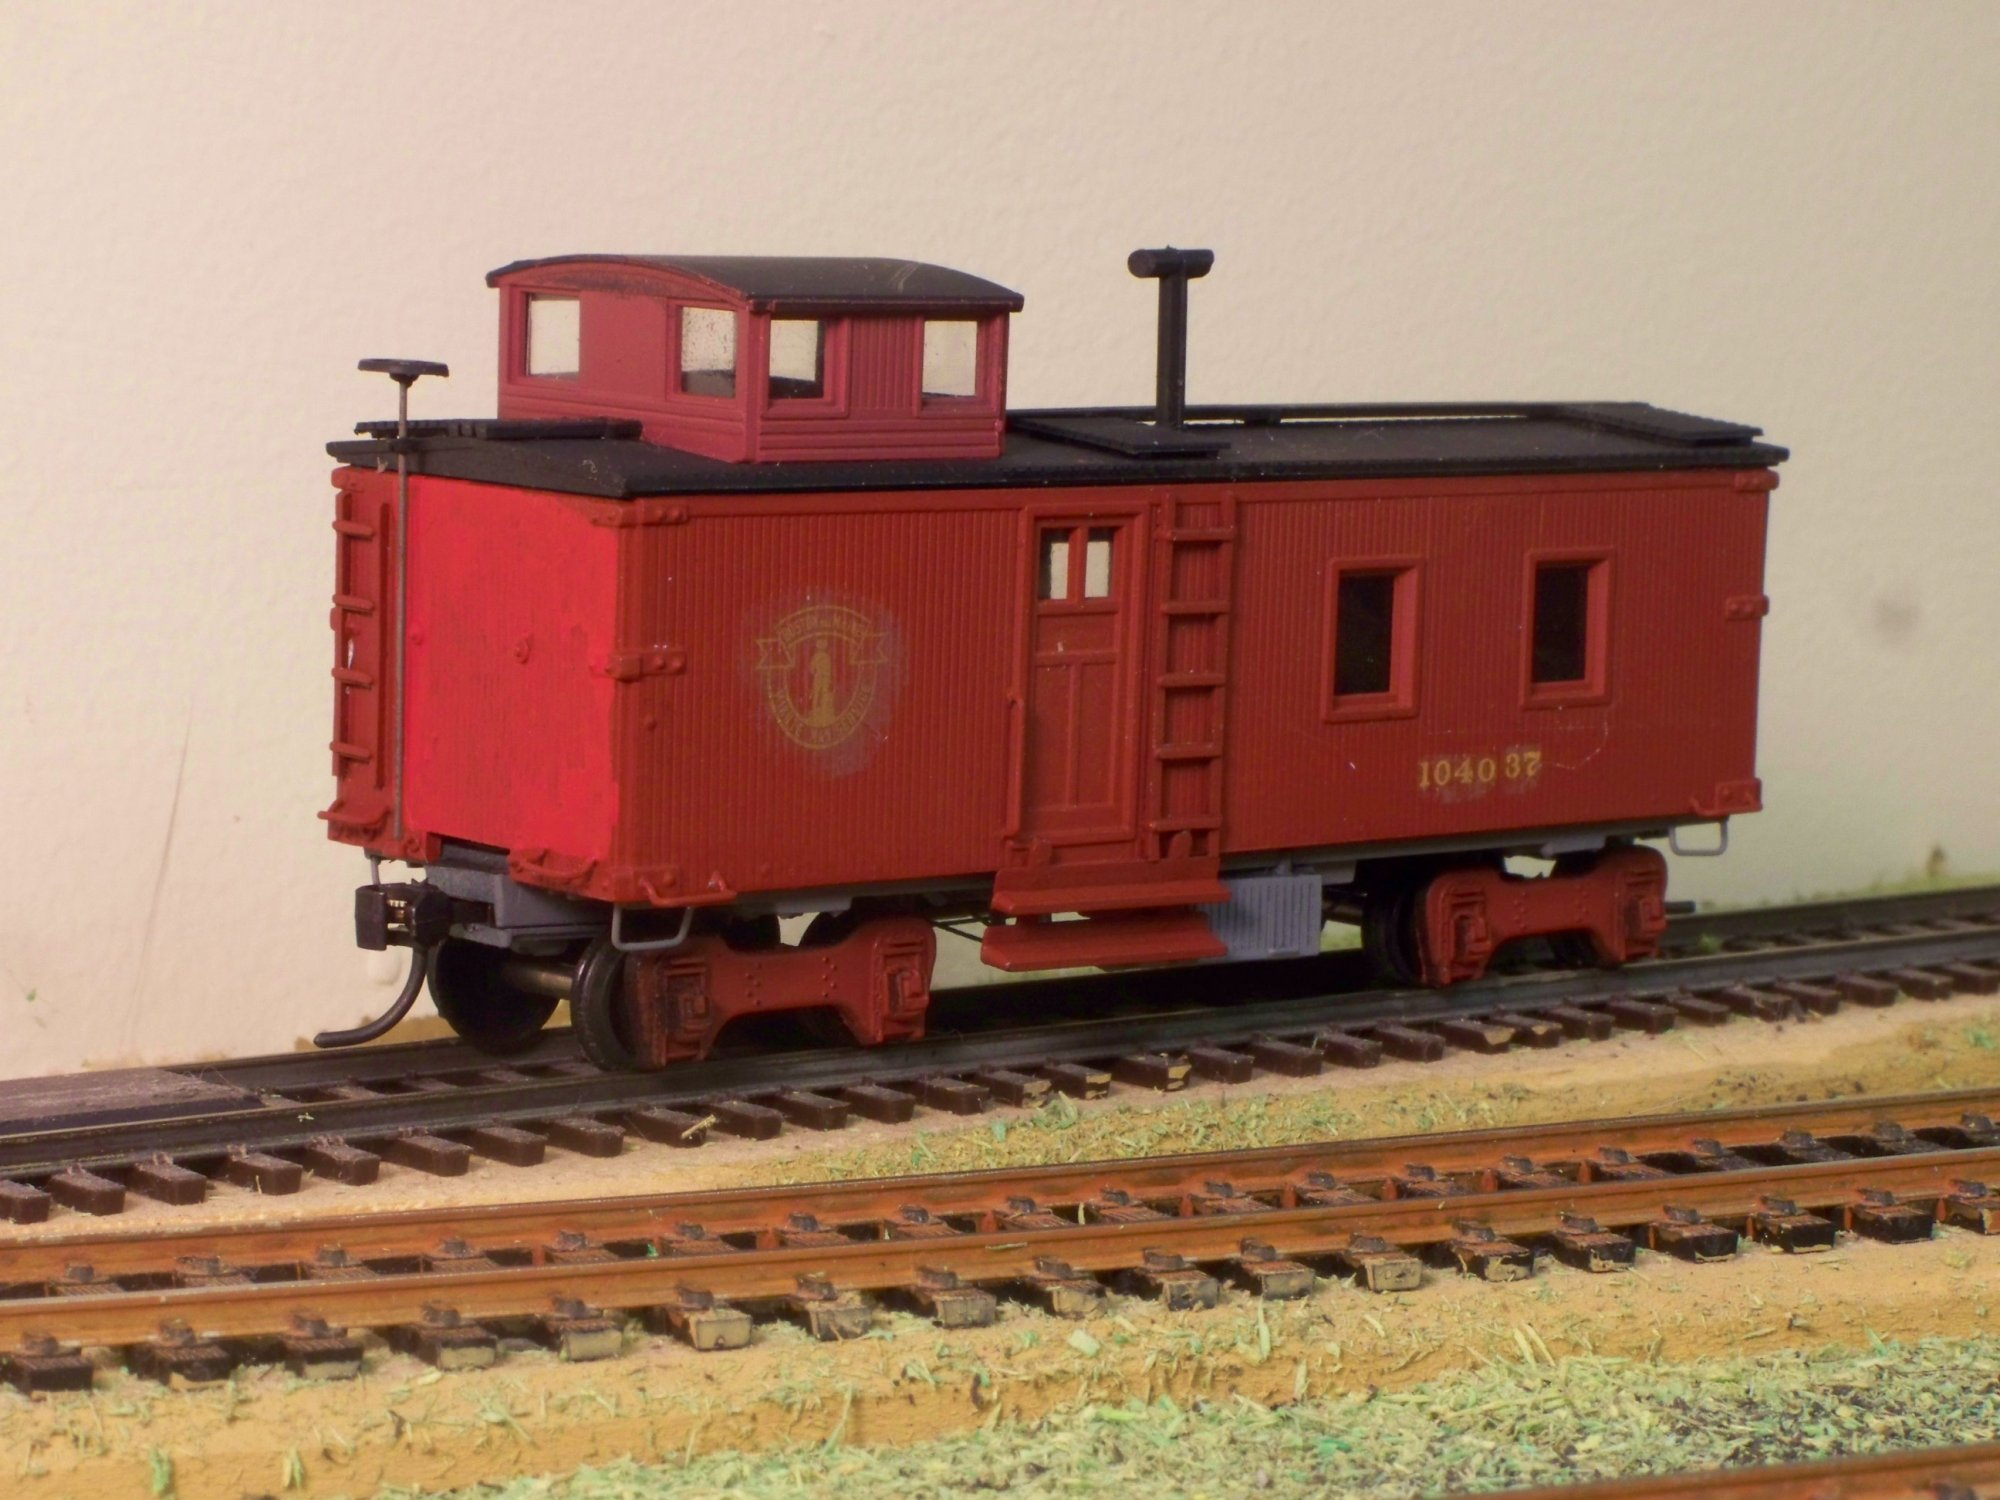 Drover's caboose, does express on the side